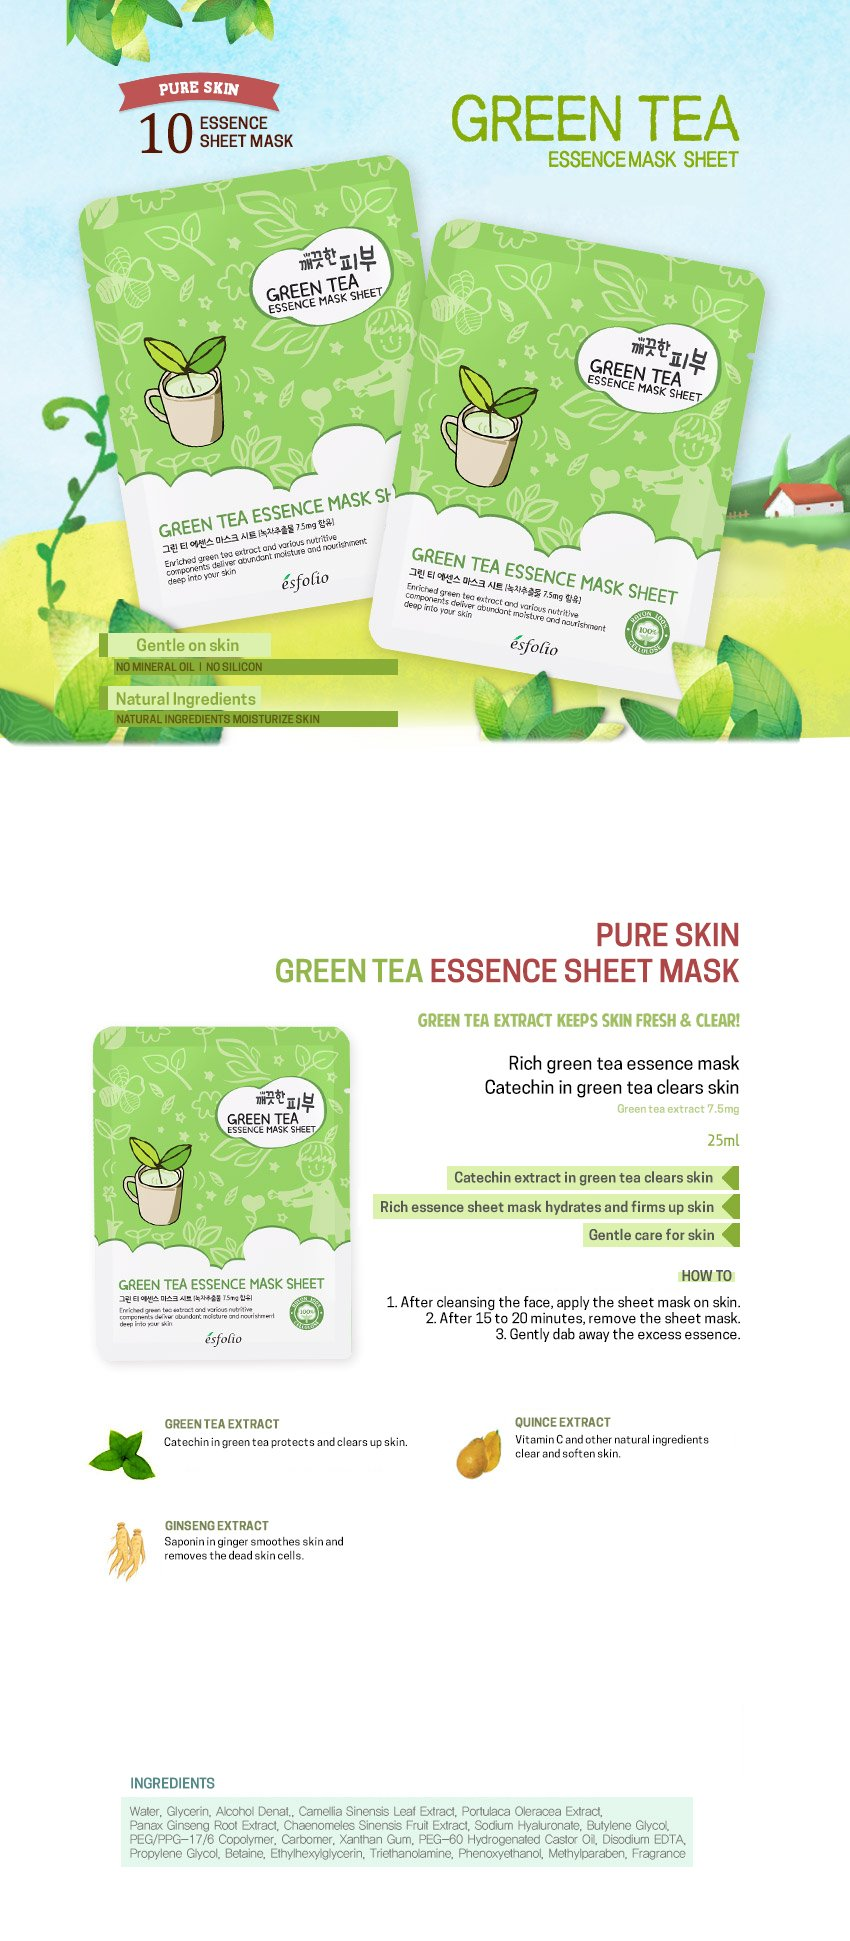 ESFOLIO Pure Skin Green Tea Essence Sheet Mask 25g KOR 3